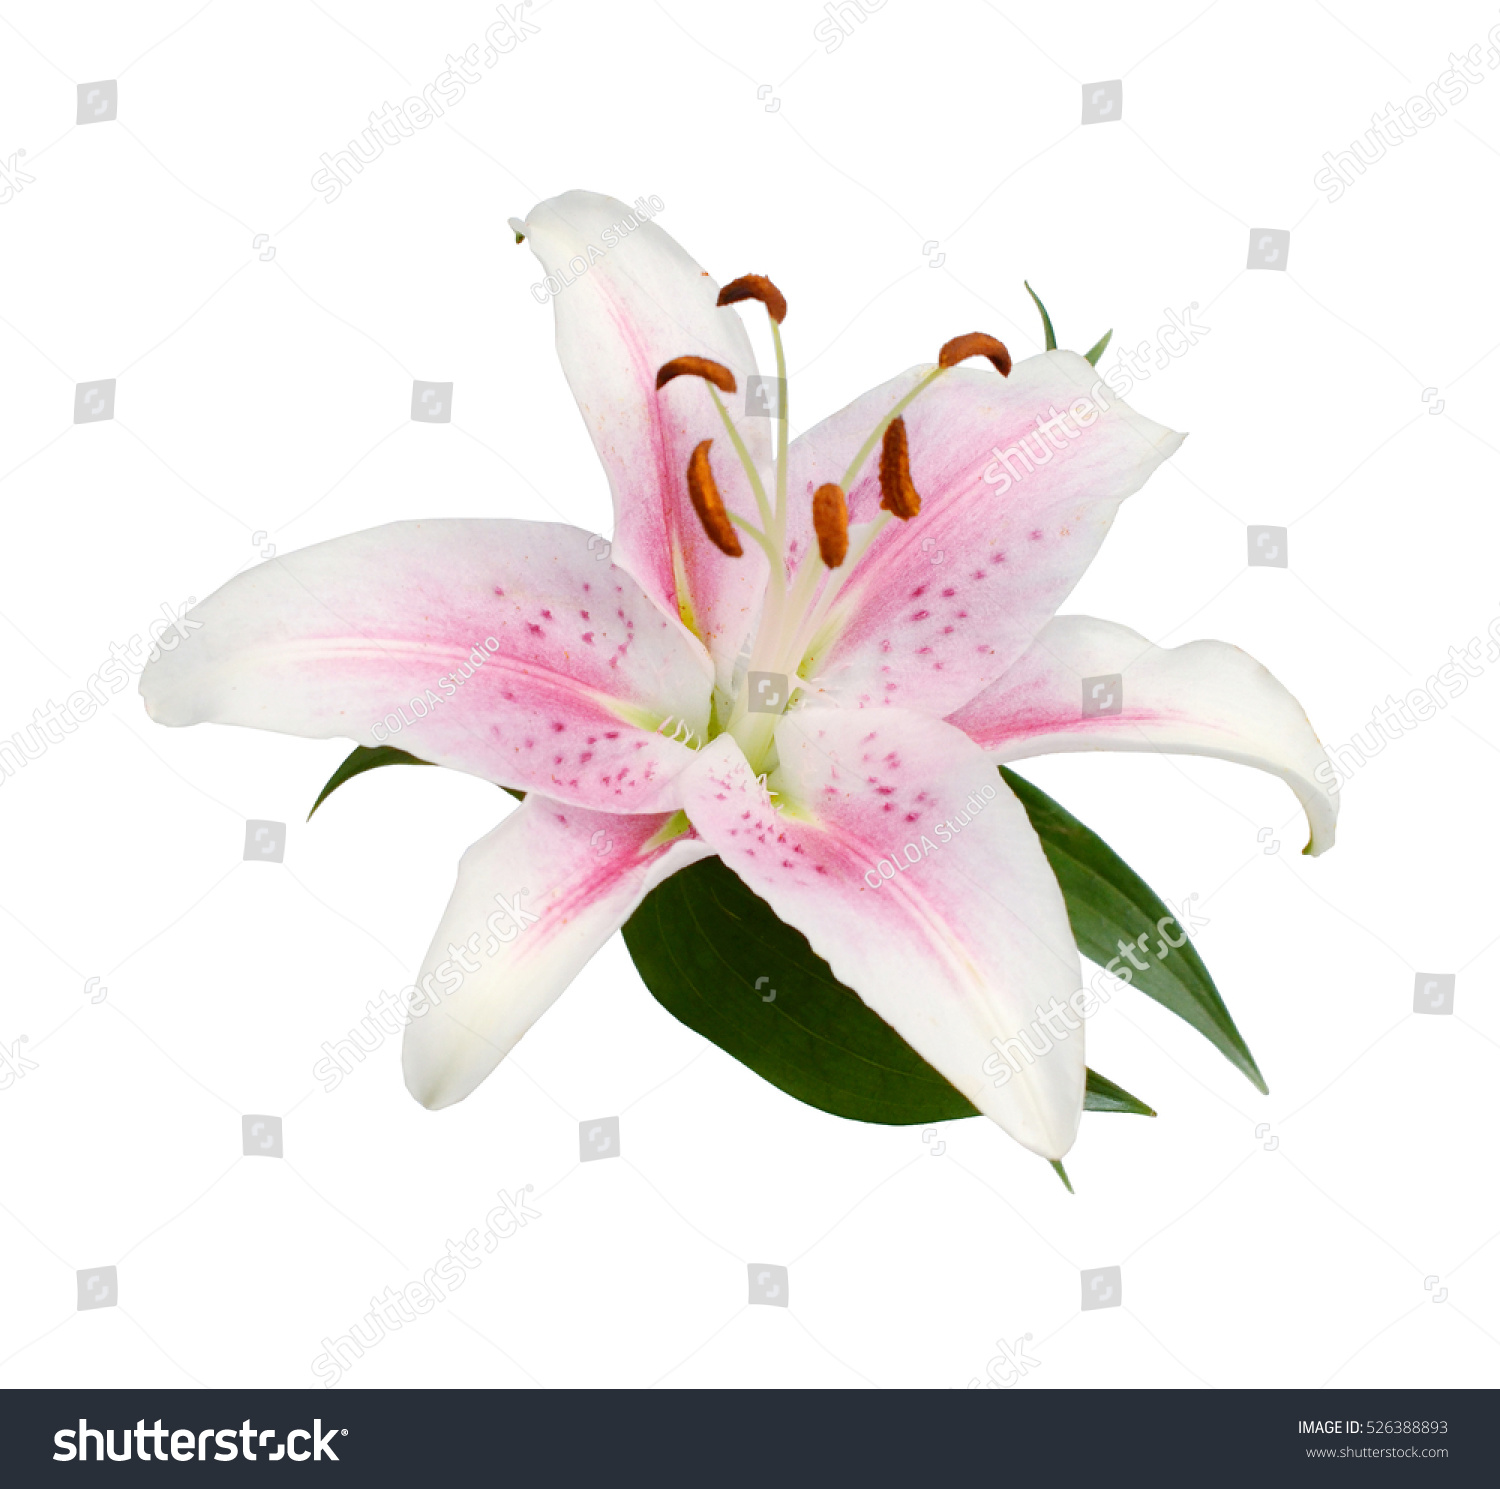 Pink stargazer lily on white stock photo edit now 526388893 pink stargazer lily on white mightylinksfo